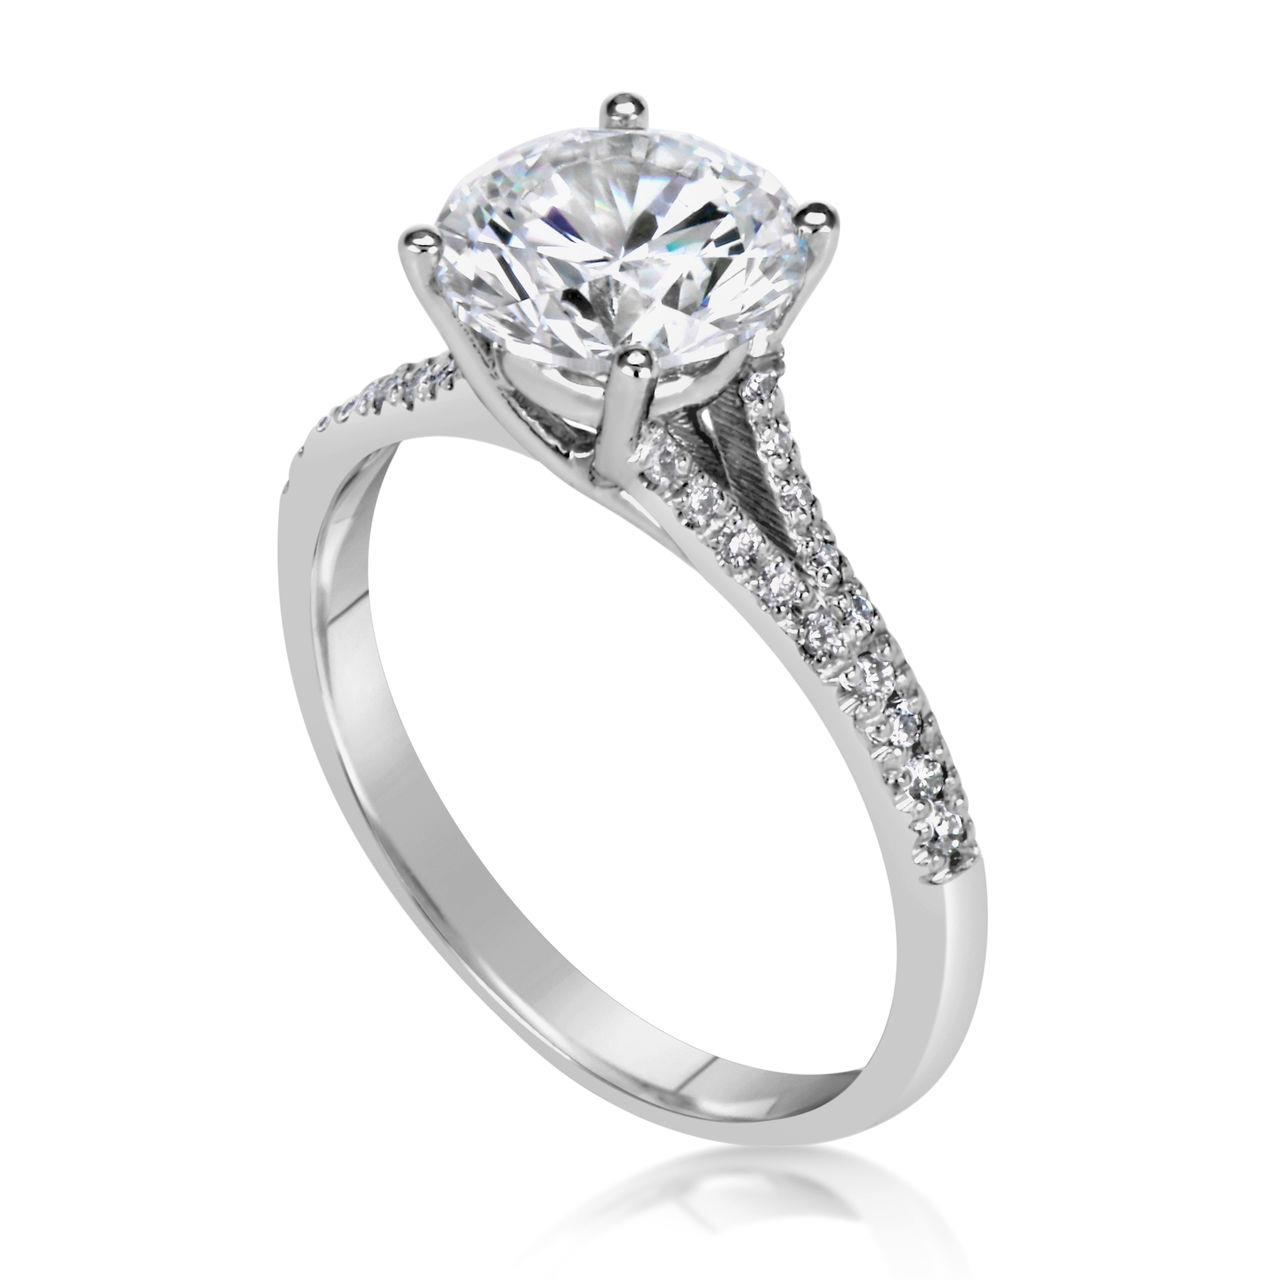 2 5 ct cut d si1 engagement ring 14k white